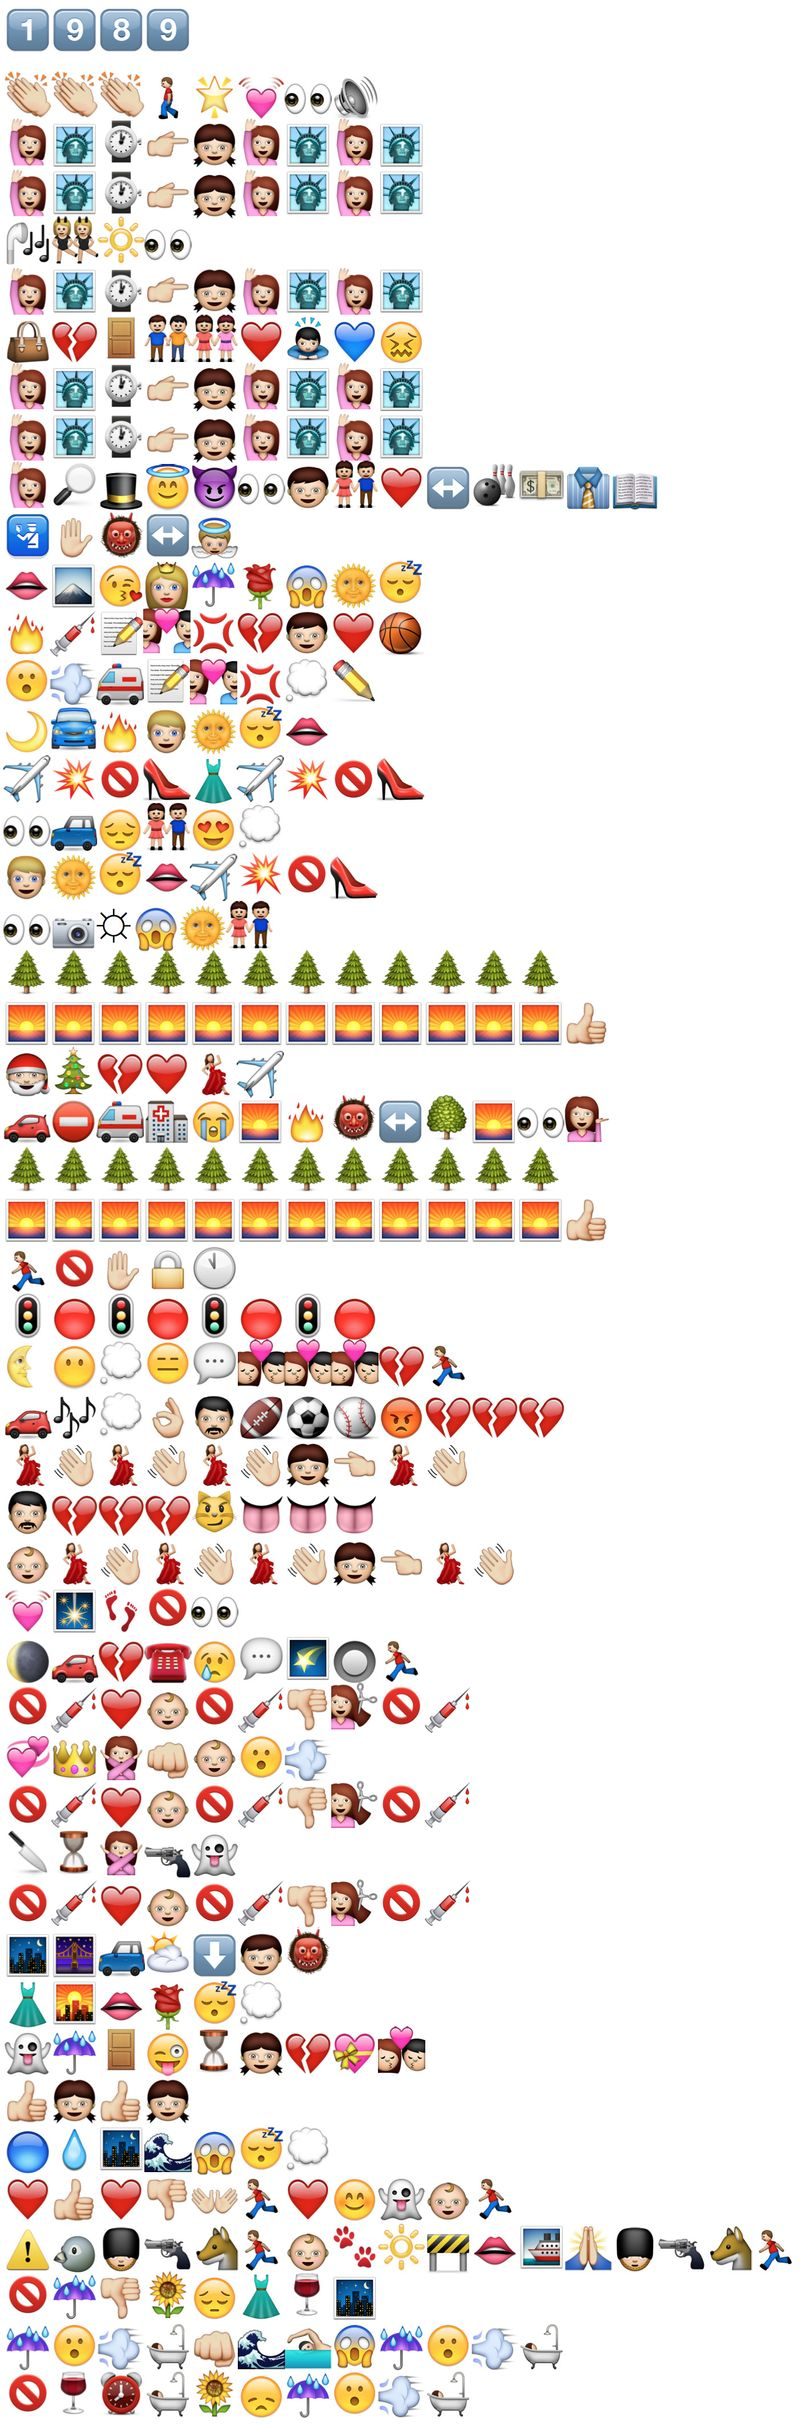 Here S Every Song On Taylor Swift S 1989 Album In Emoji Mtv